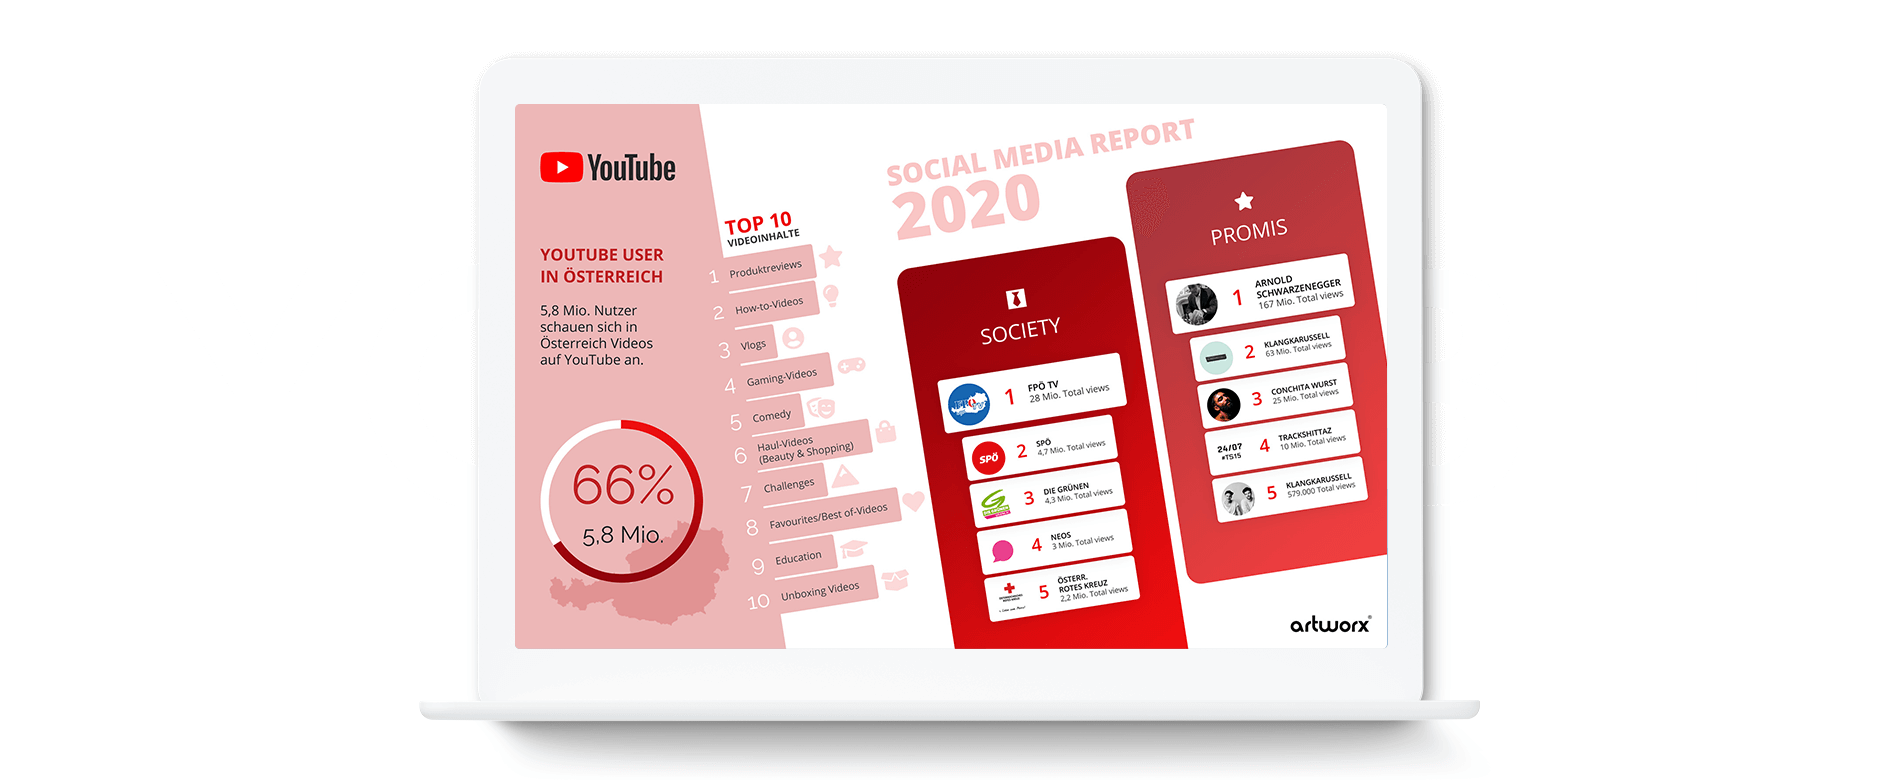 YouTube - Social Media Report 2020 Österreich